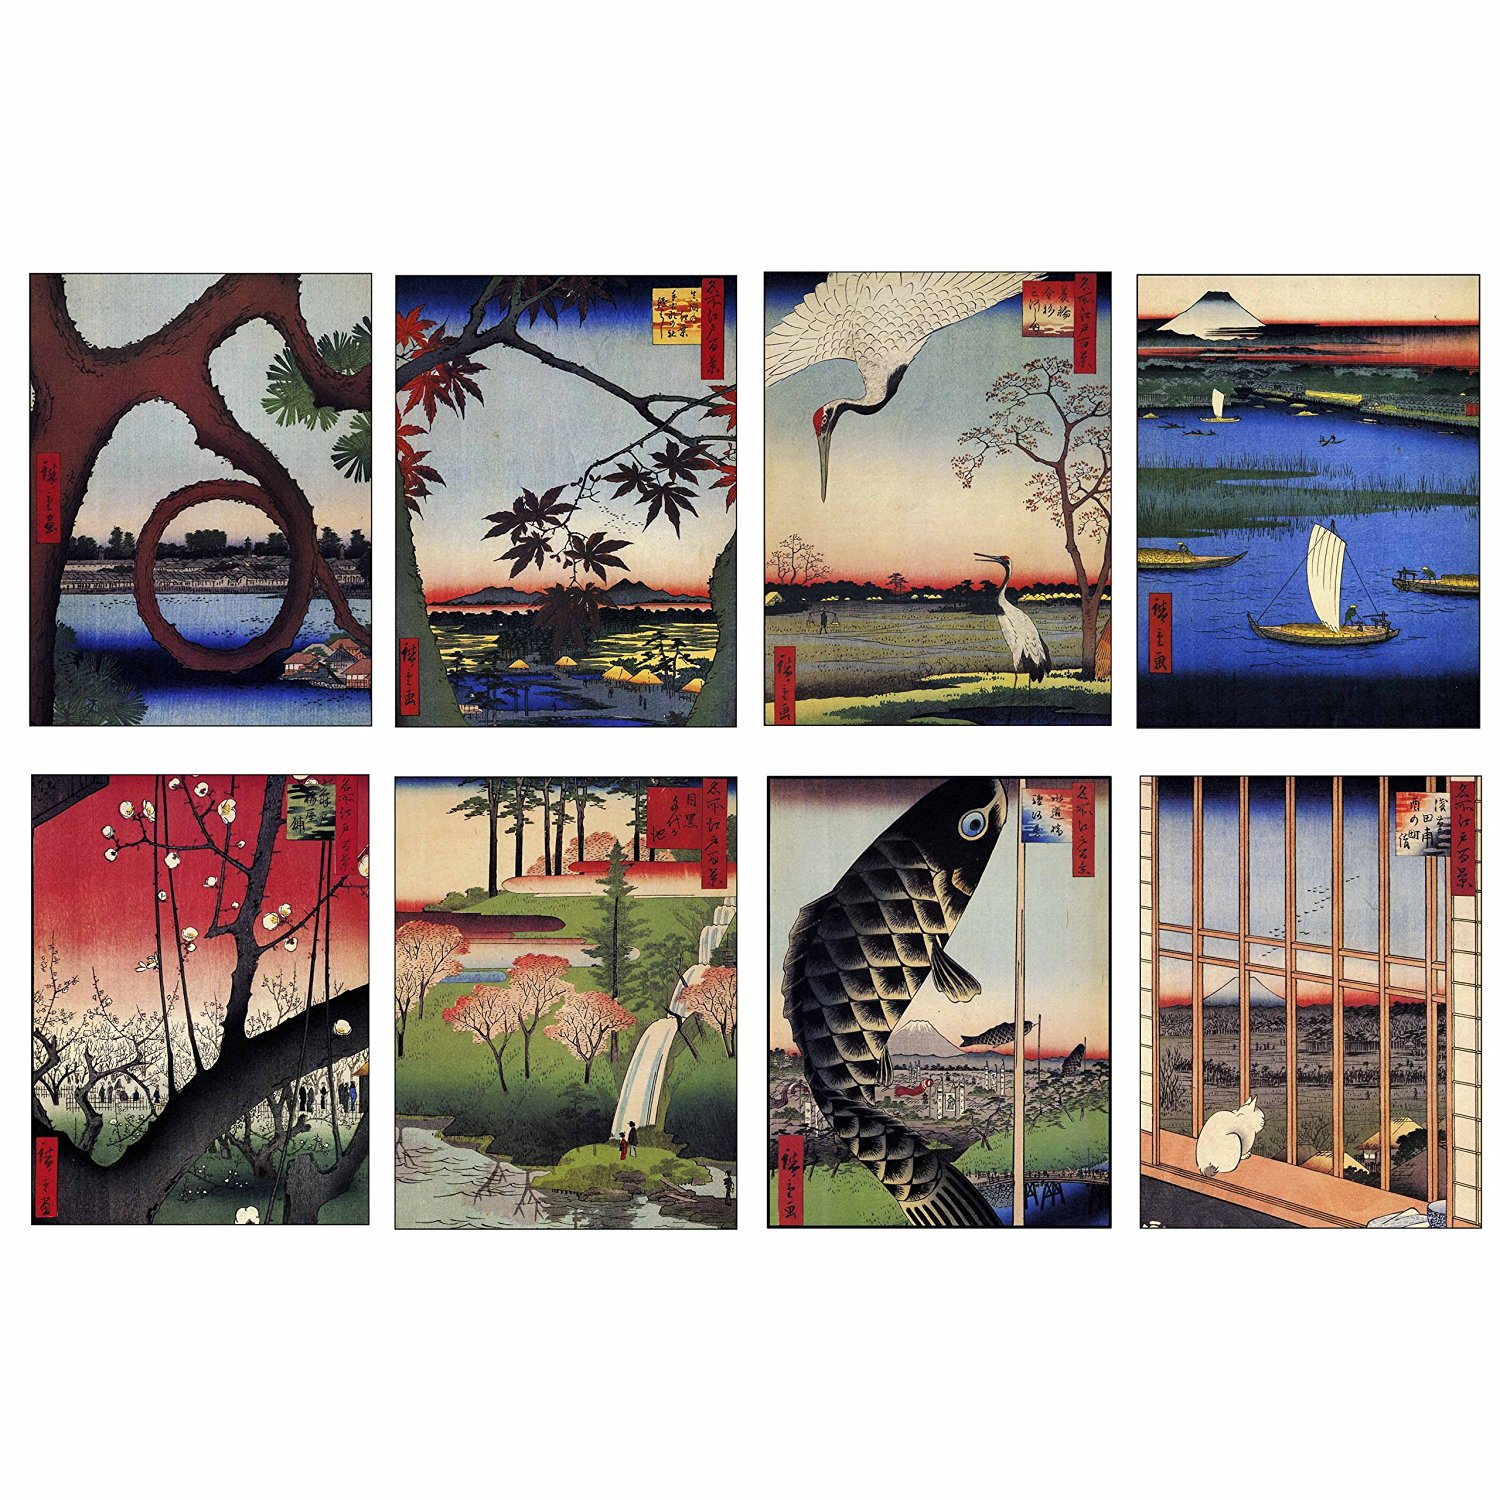 Cheap Japanese Phone Cards Find Japanese Phone Cards Deals On Line